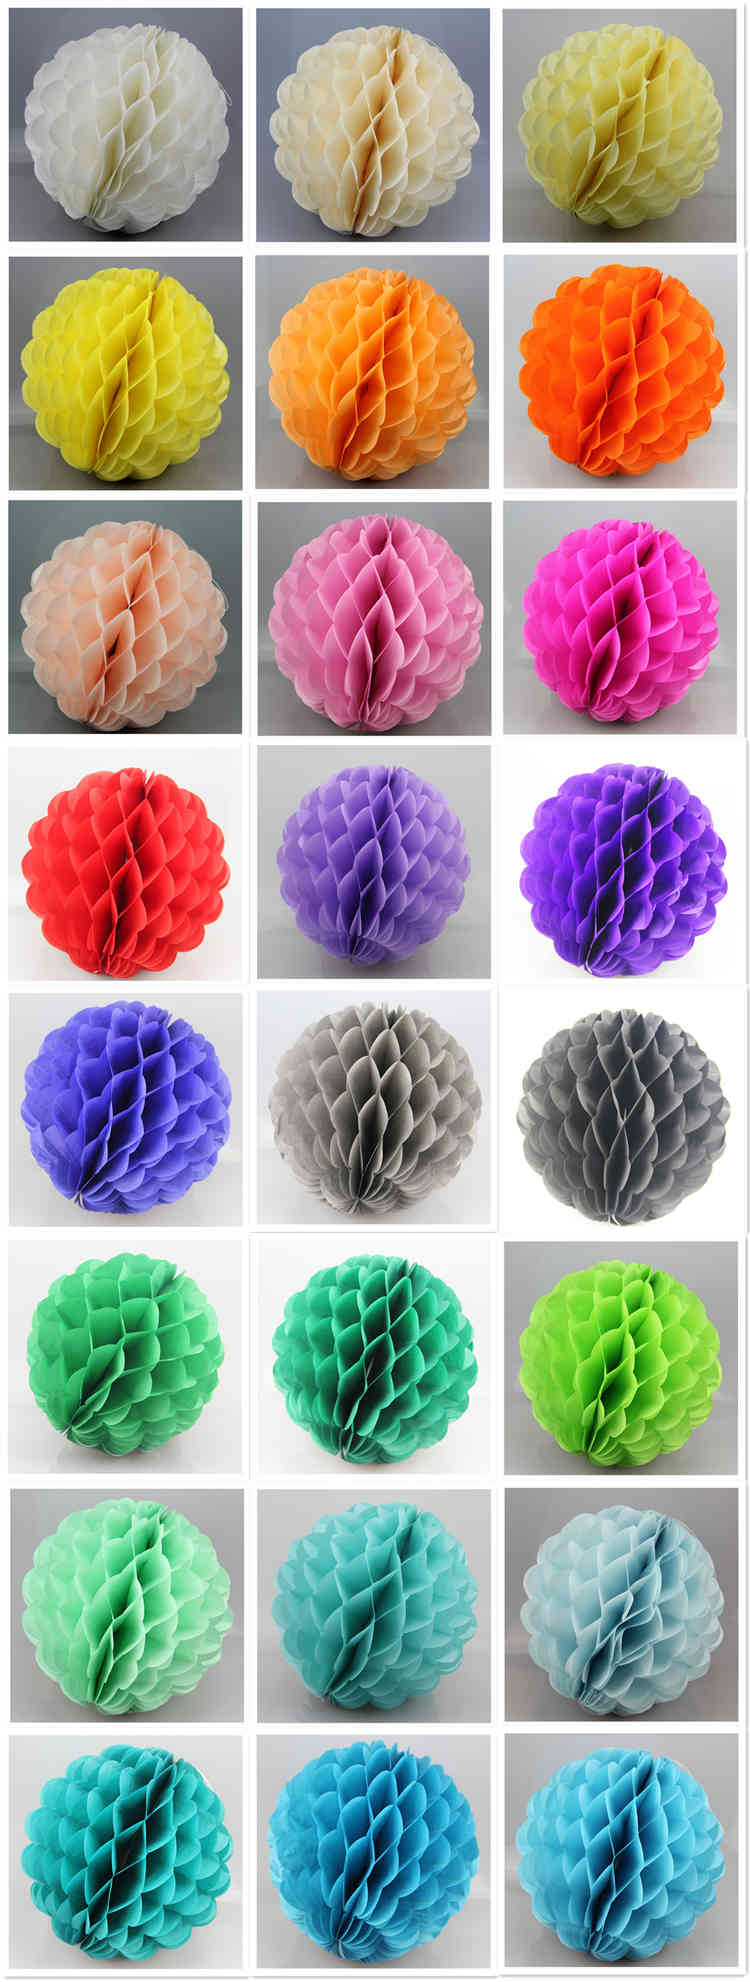 colorful Special Shaped Tissue Paper Honeycomb Ball